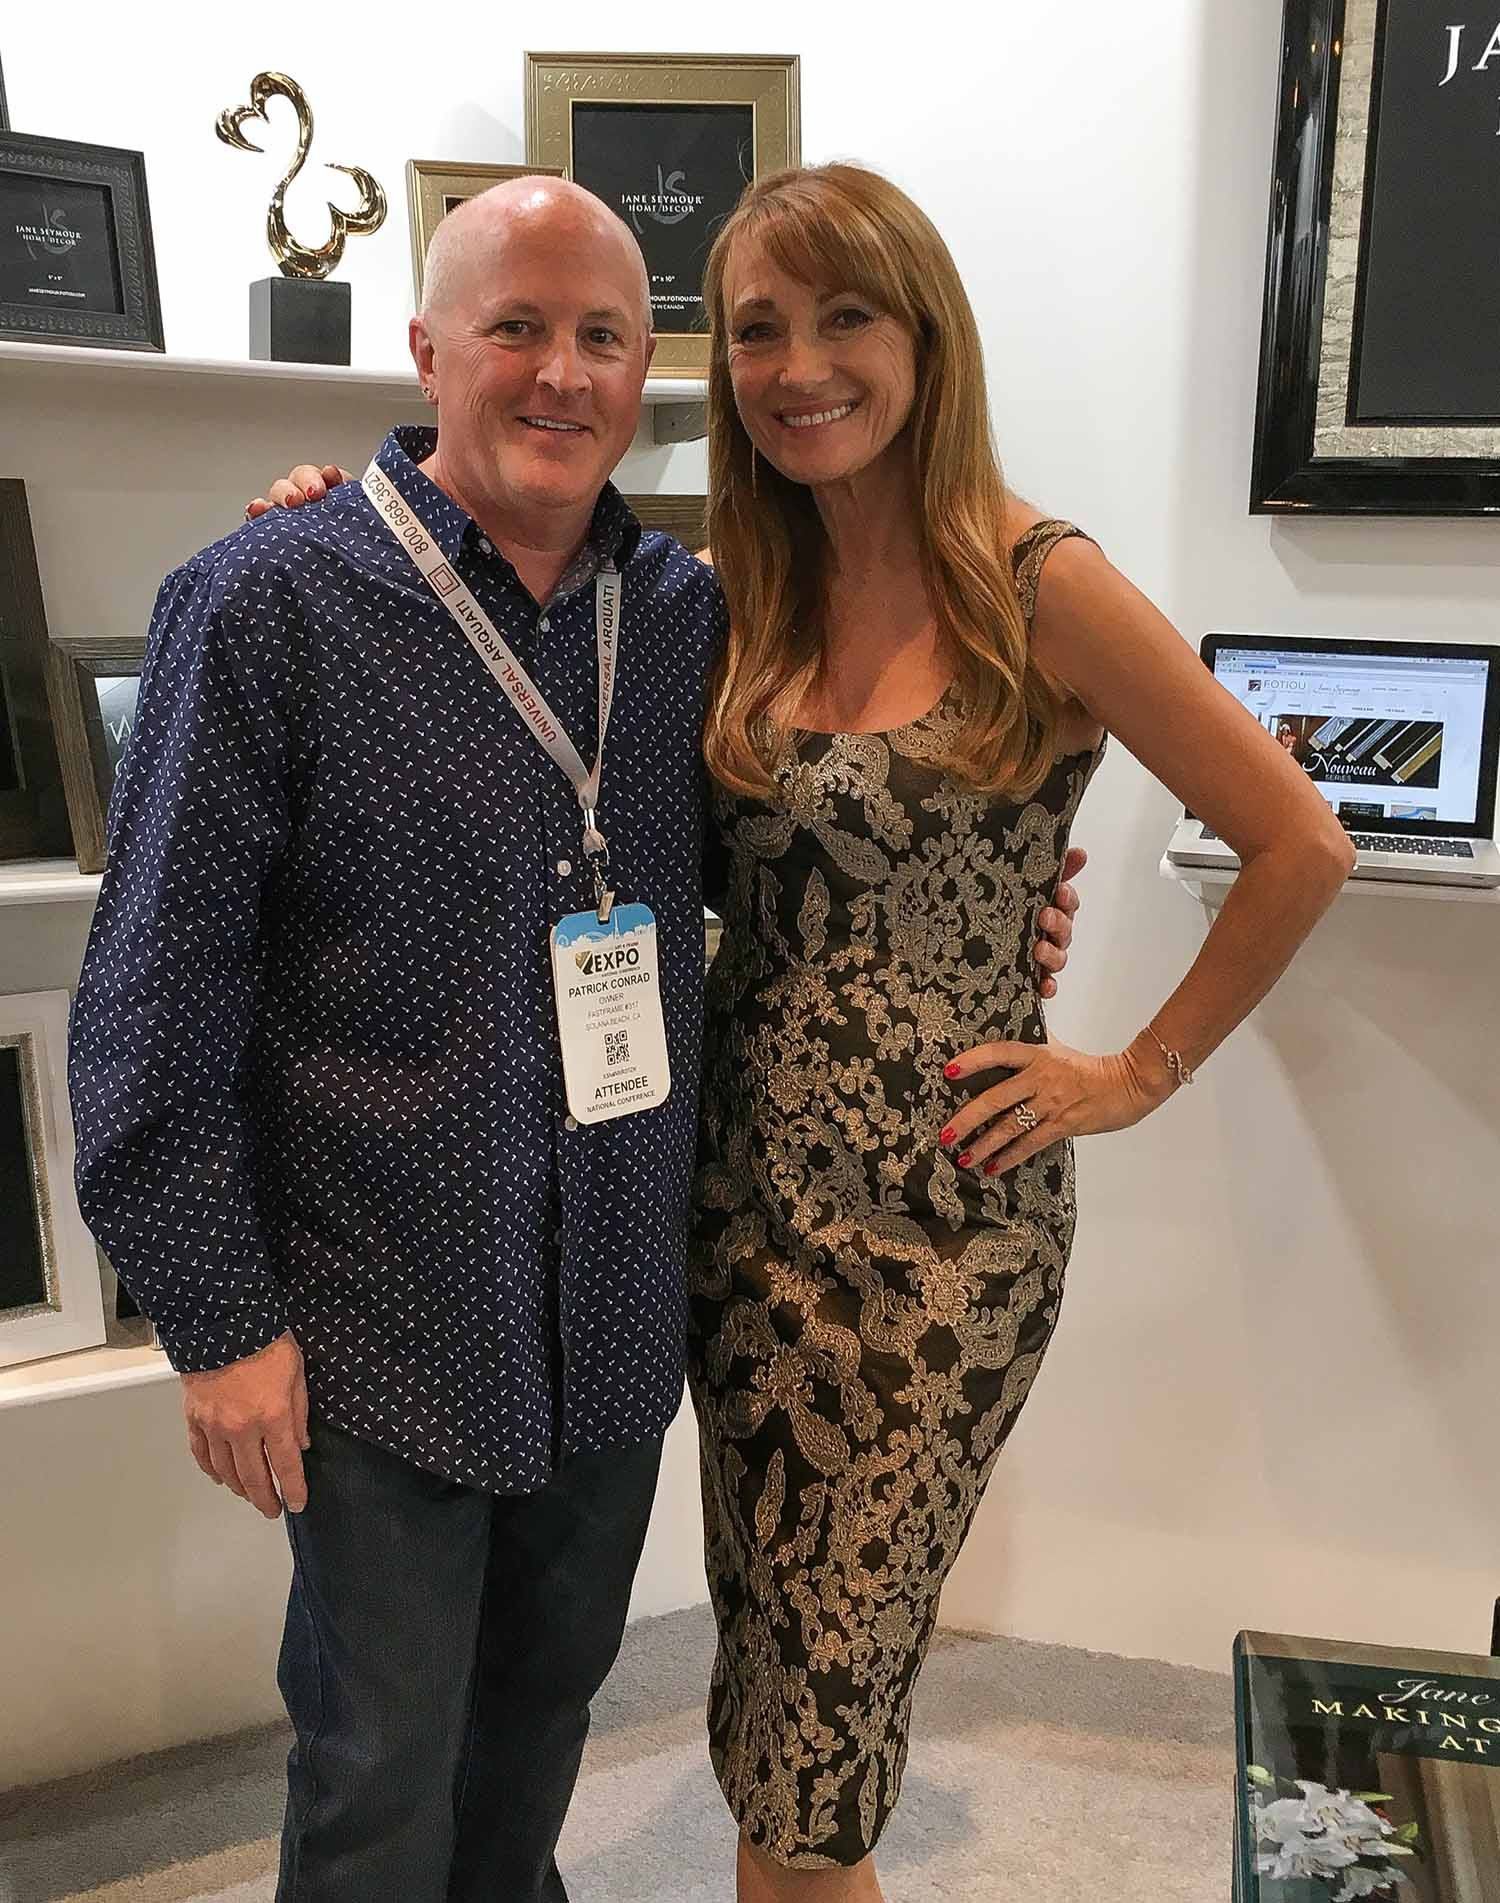 Patrick with Jane Seymour at the West Coast Art and Frame Show.